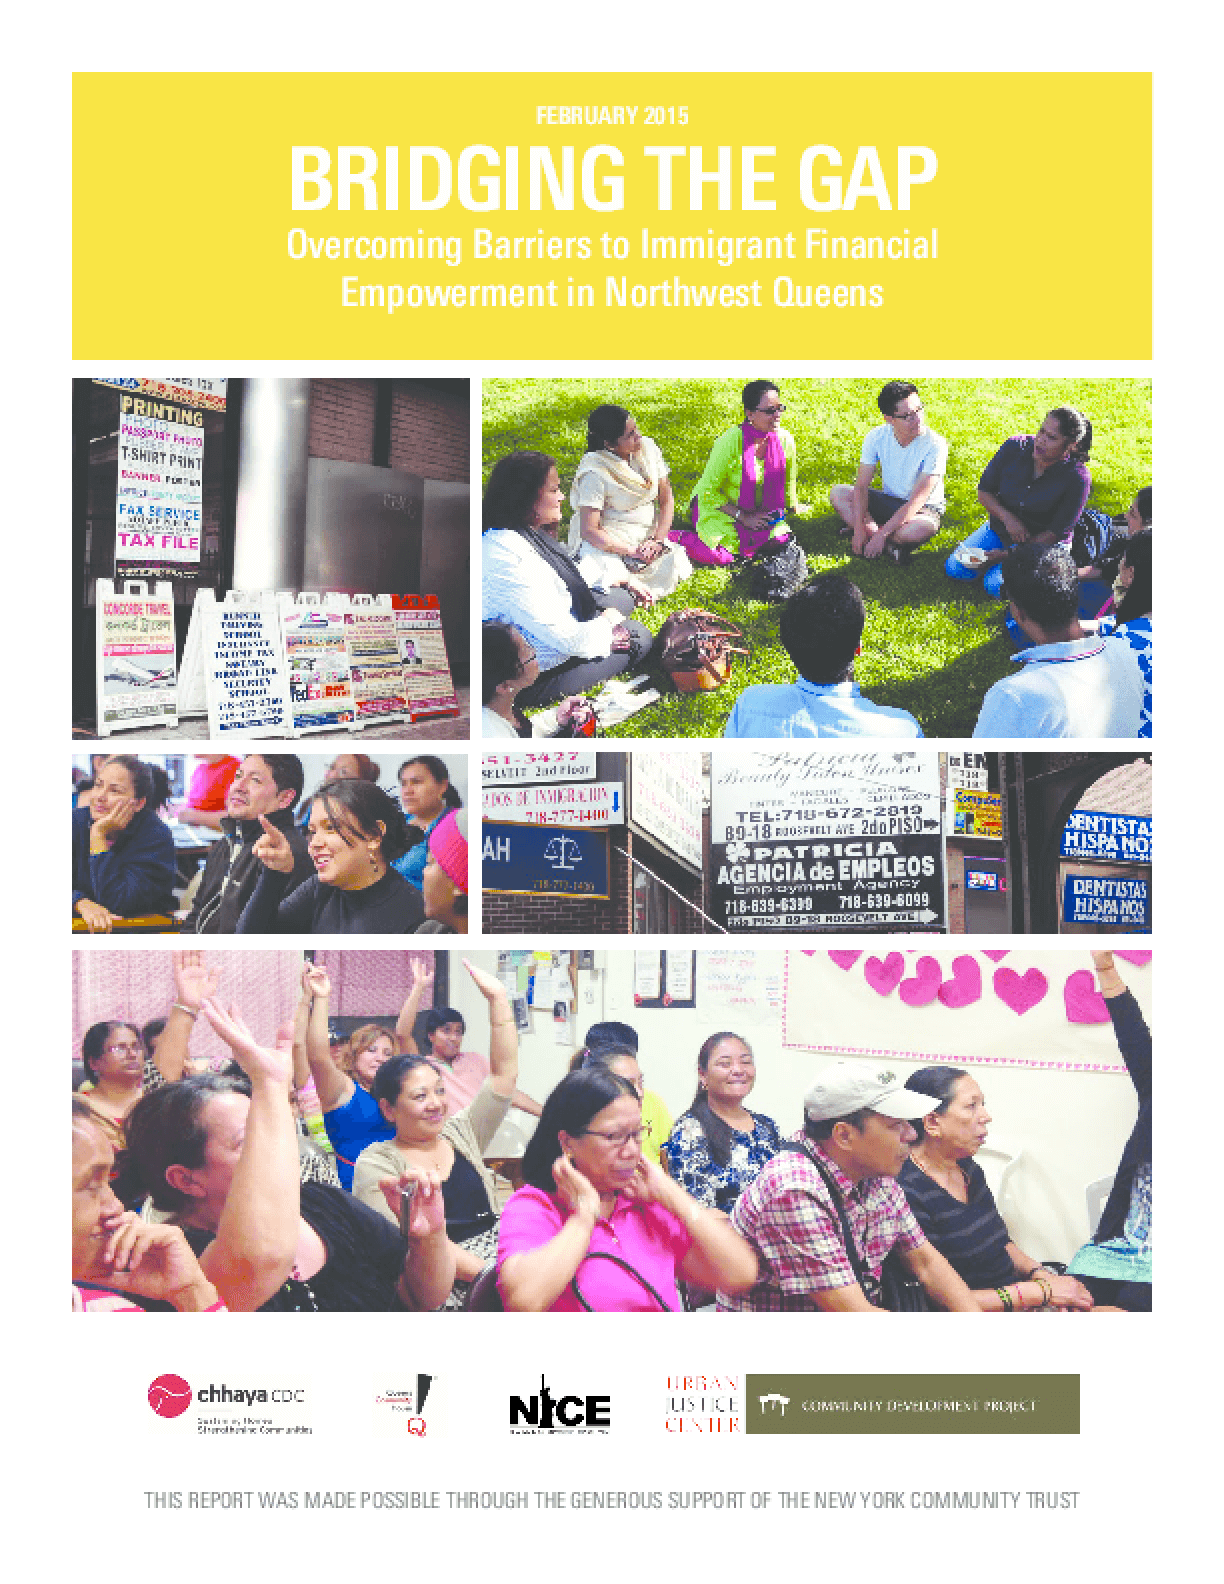 Bridging the Gap: Overcoming Barriers to Immigrant Financial Empowerment in Northwest Queens